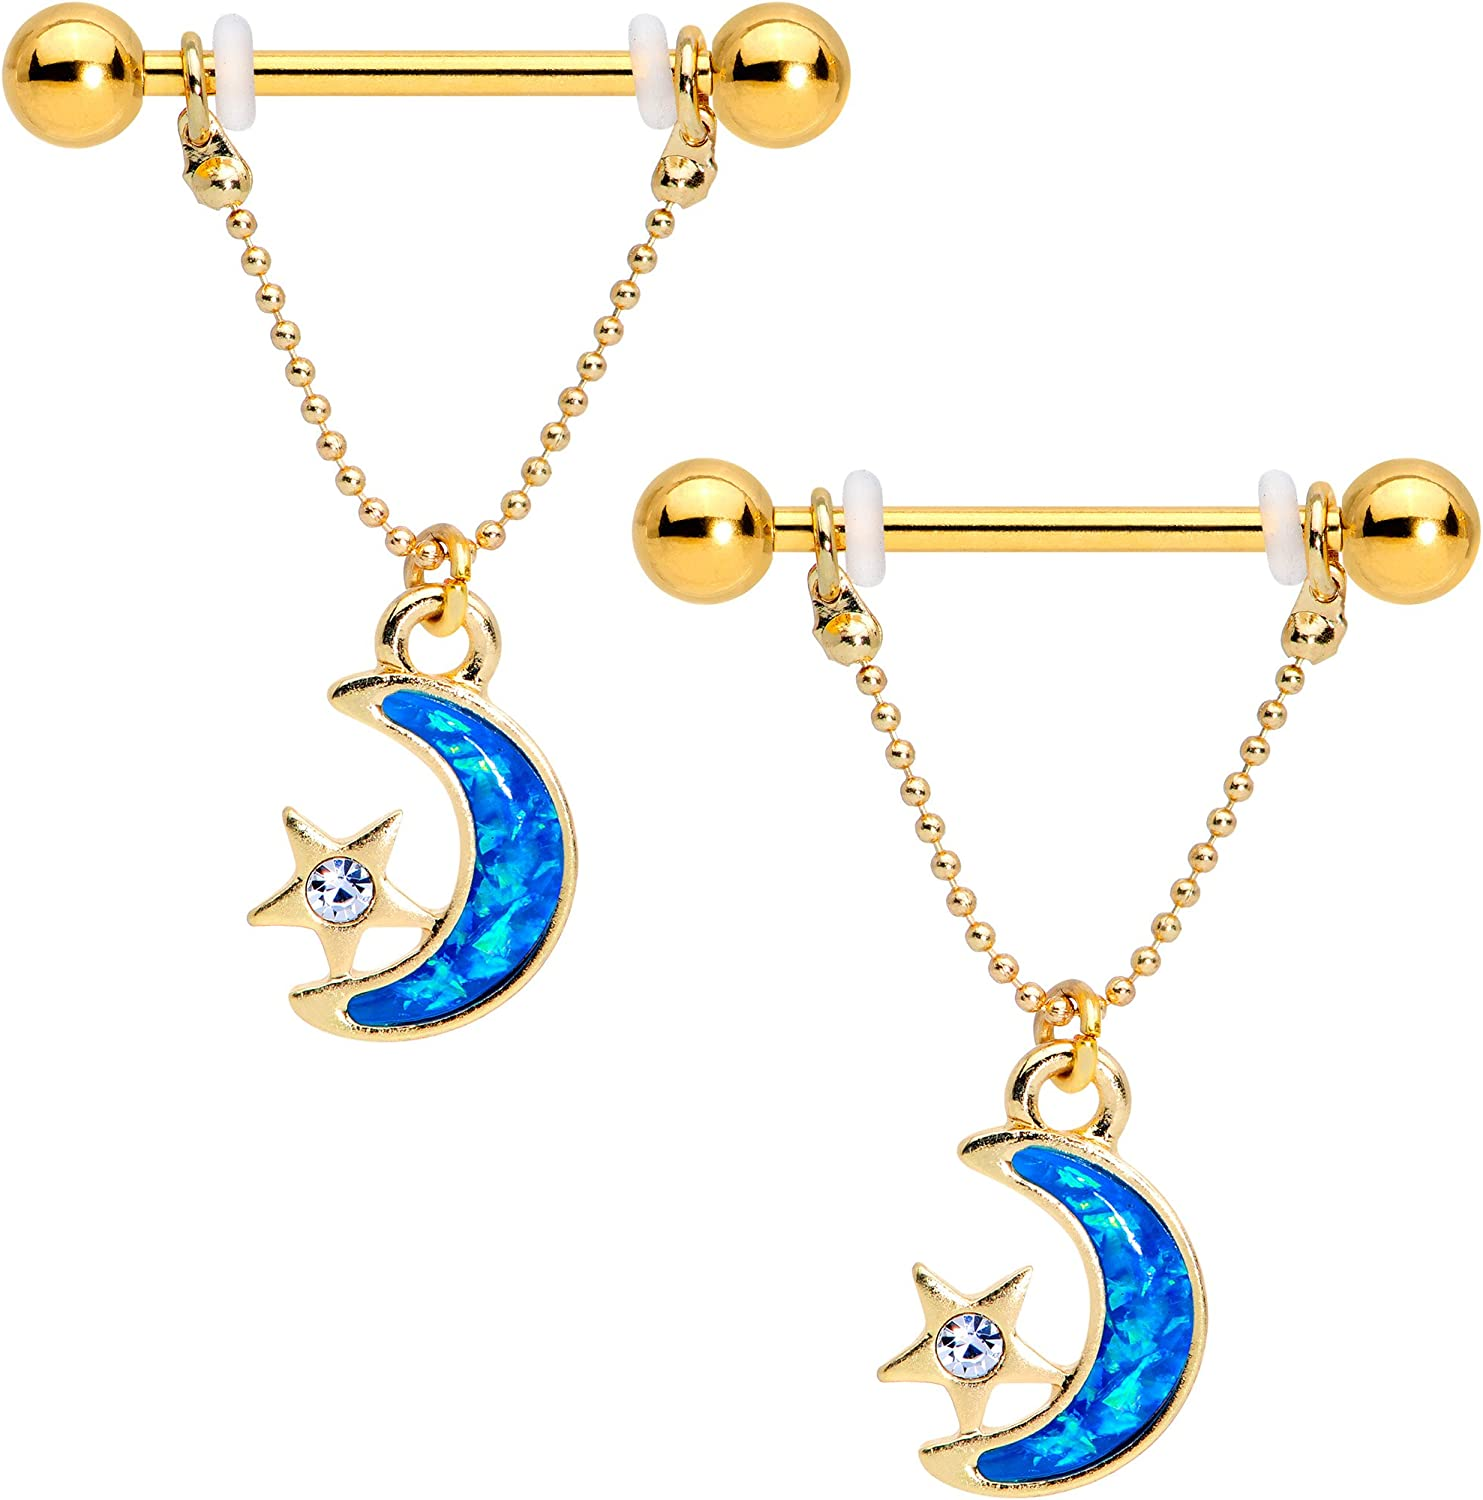 Body Candy Gold PVD Clear Accent Blue Moon Star Dangle Barbell Nipple Ring Set of 2 14 Gauge 9/16